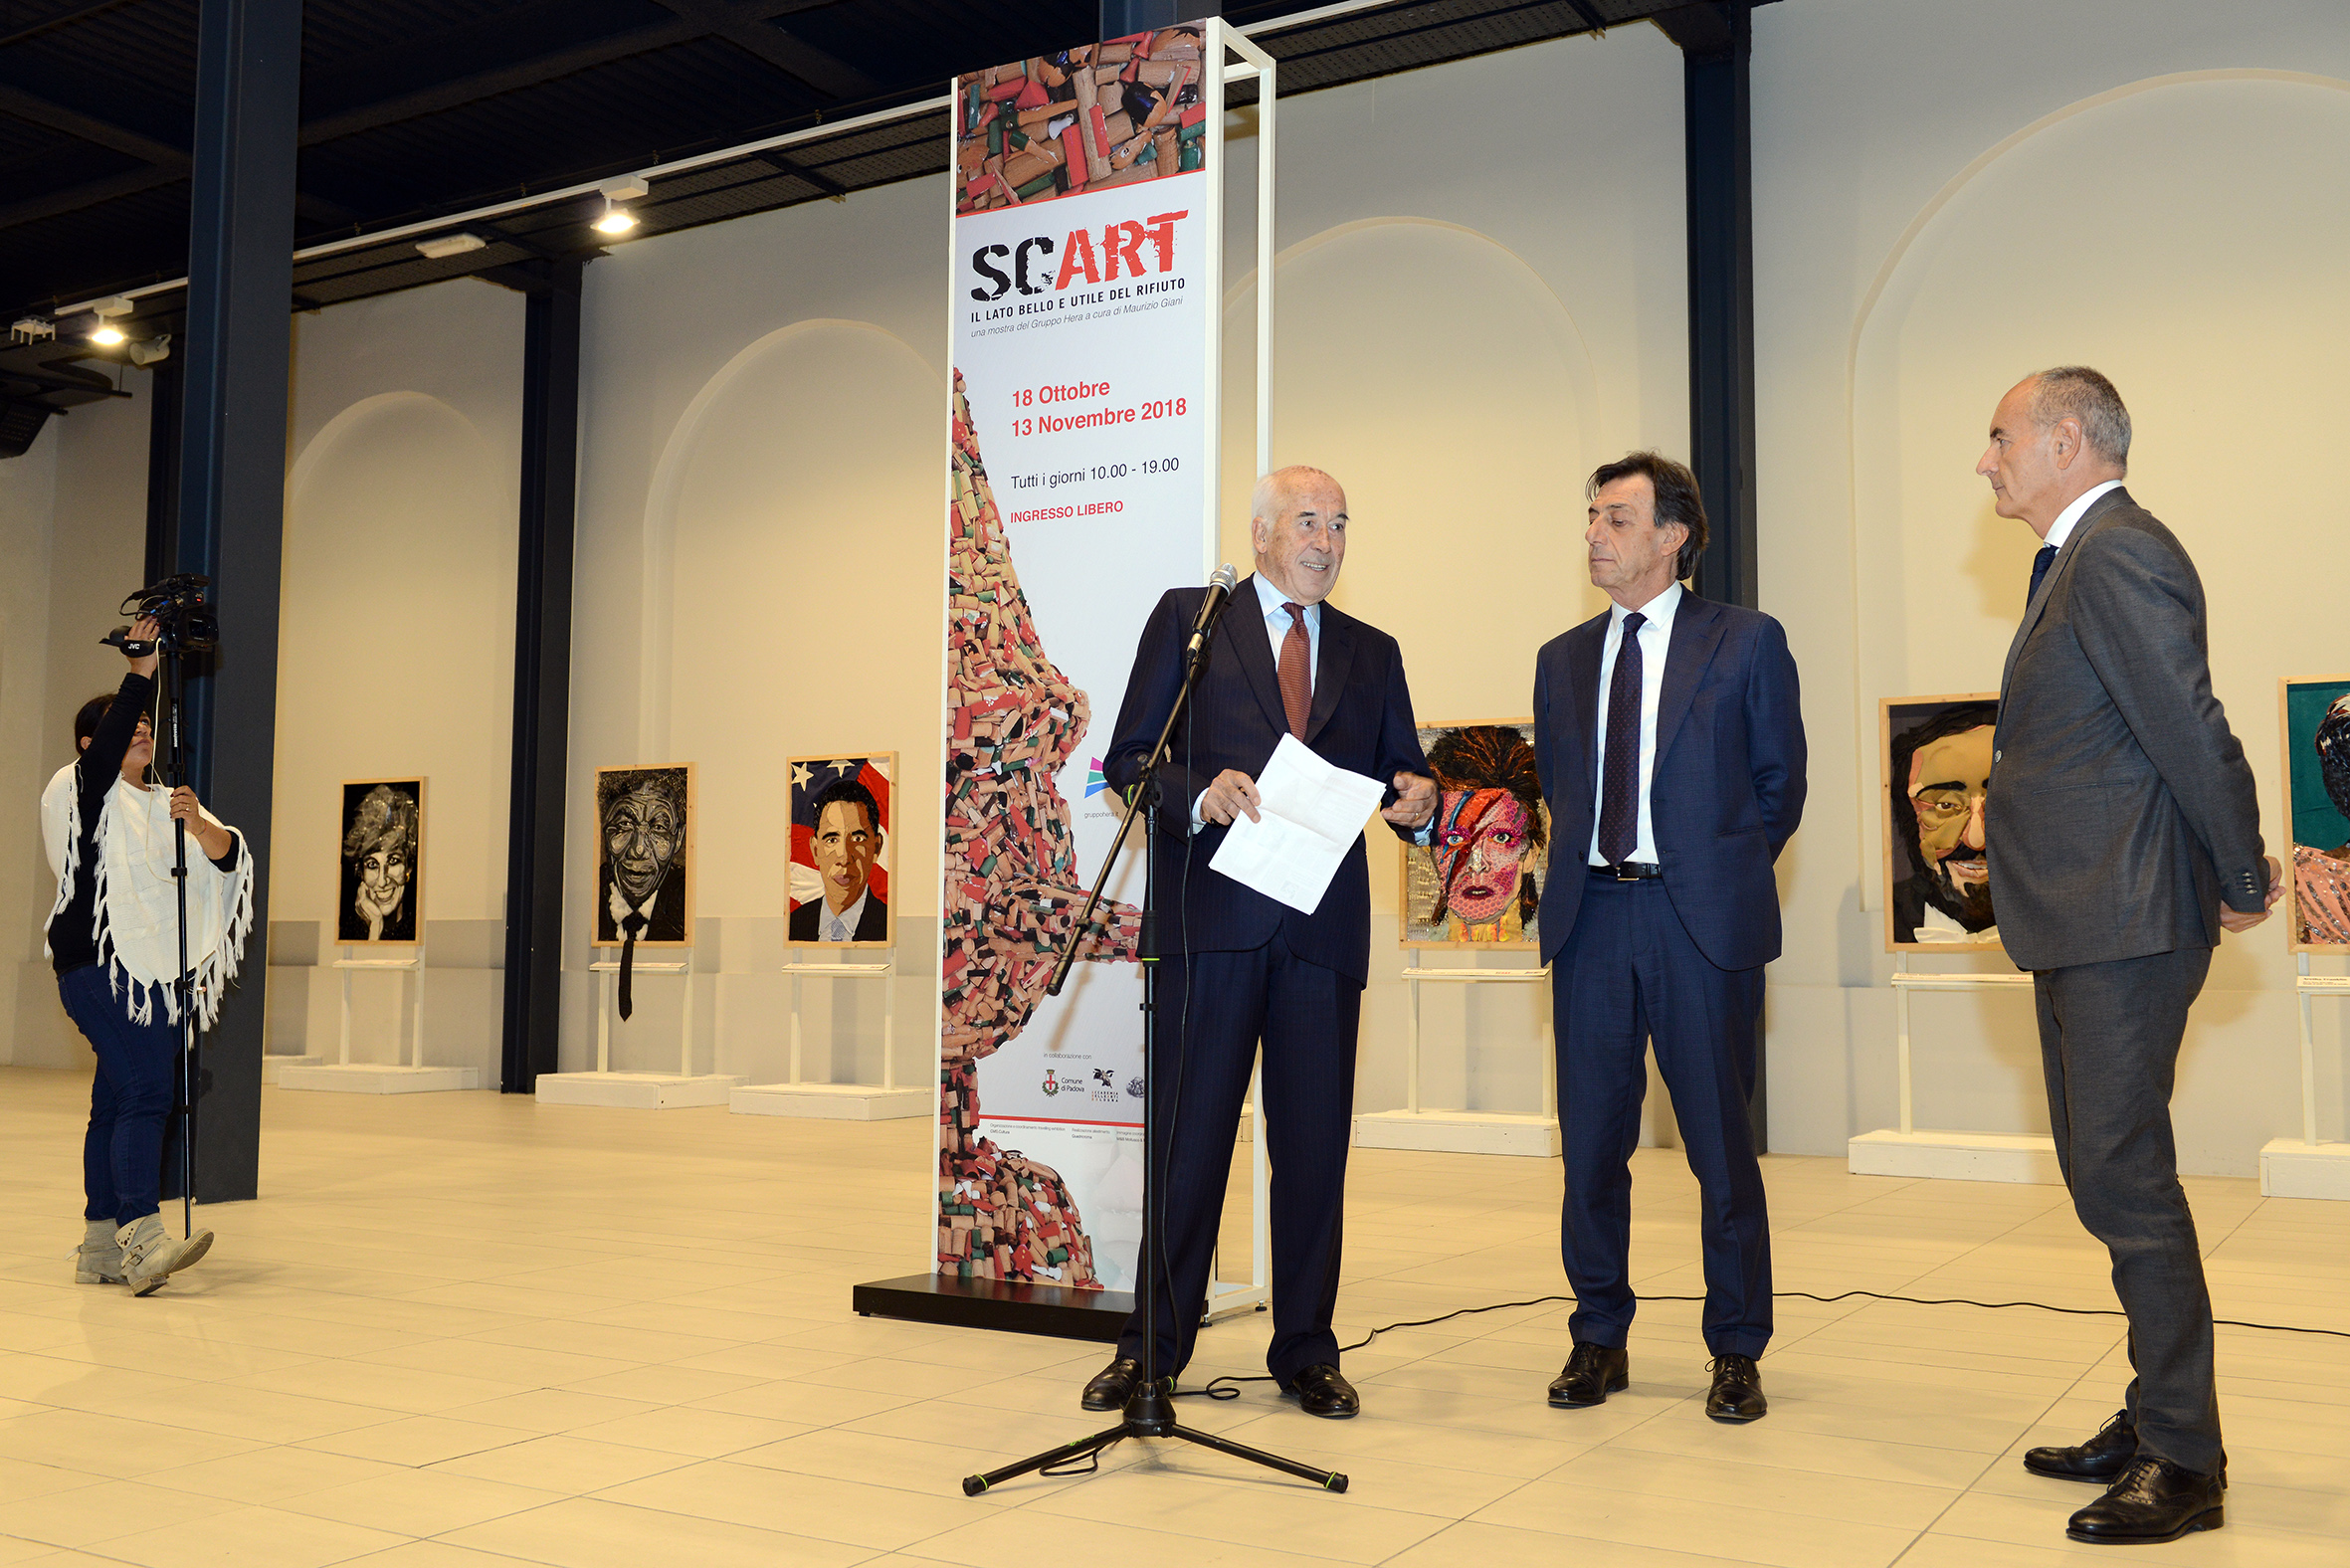 SCART in mostra a Padova